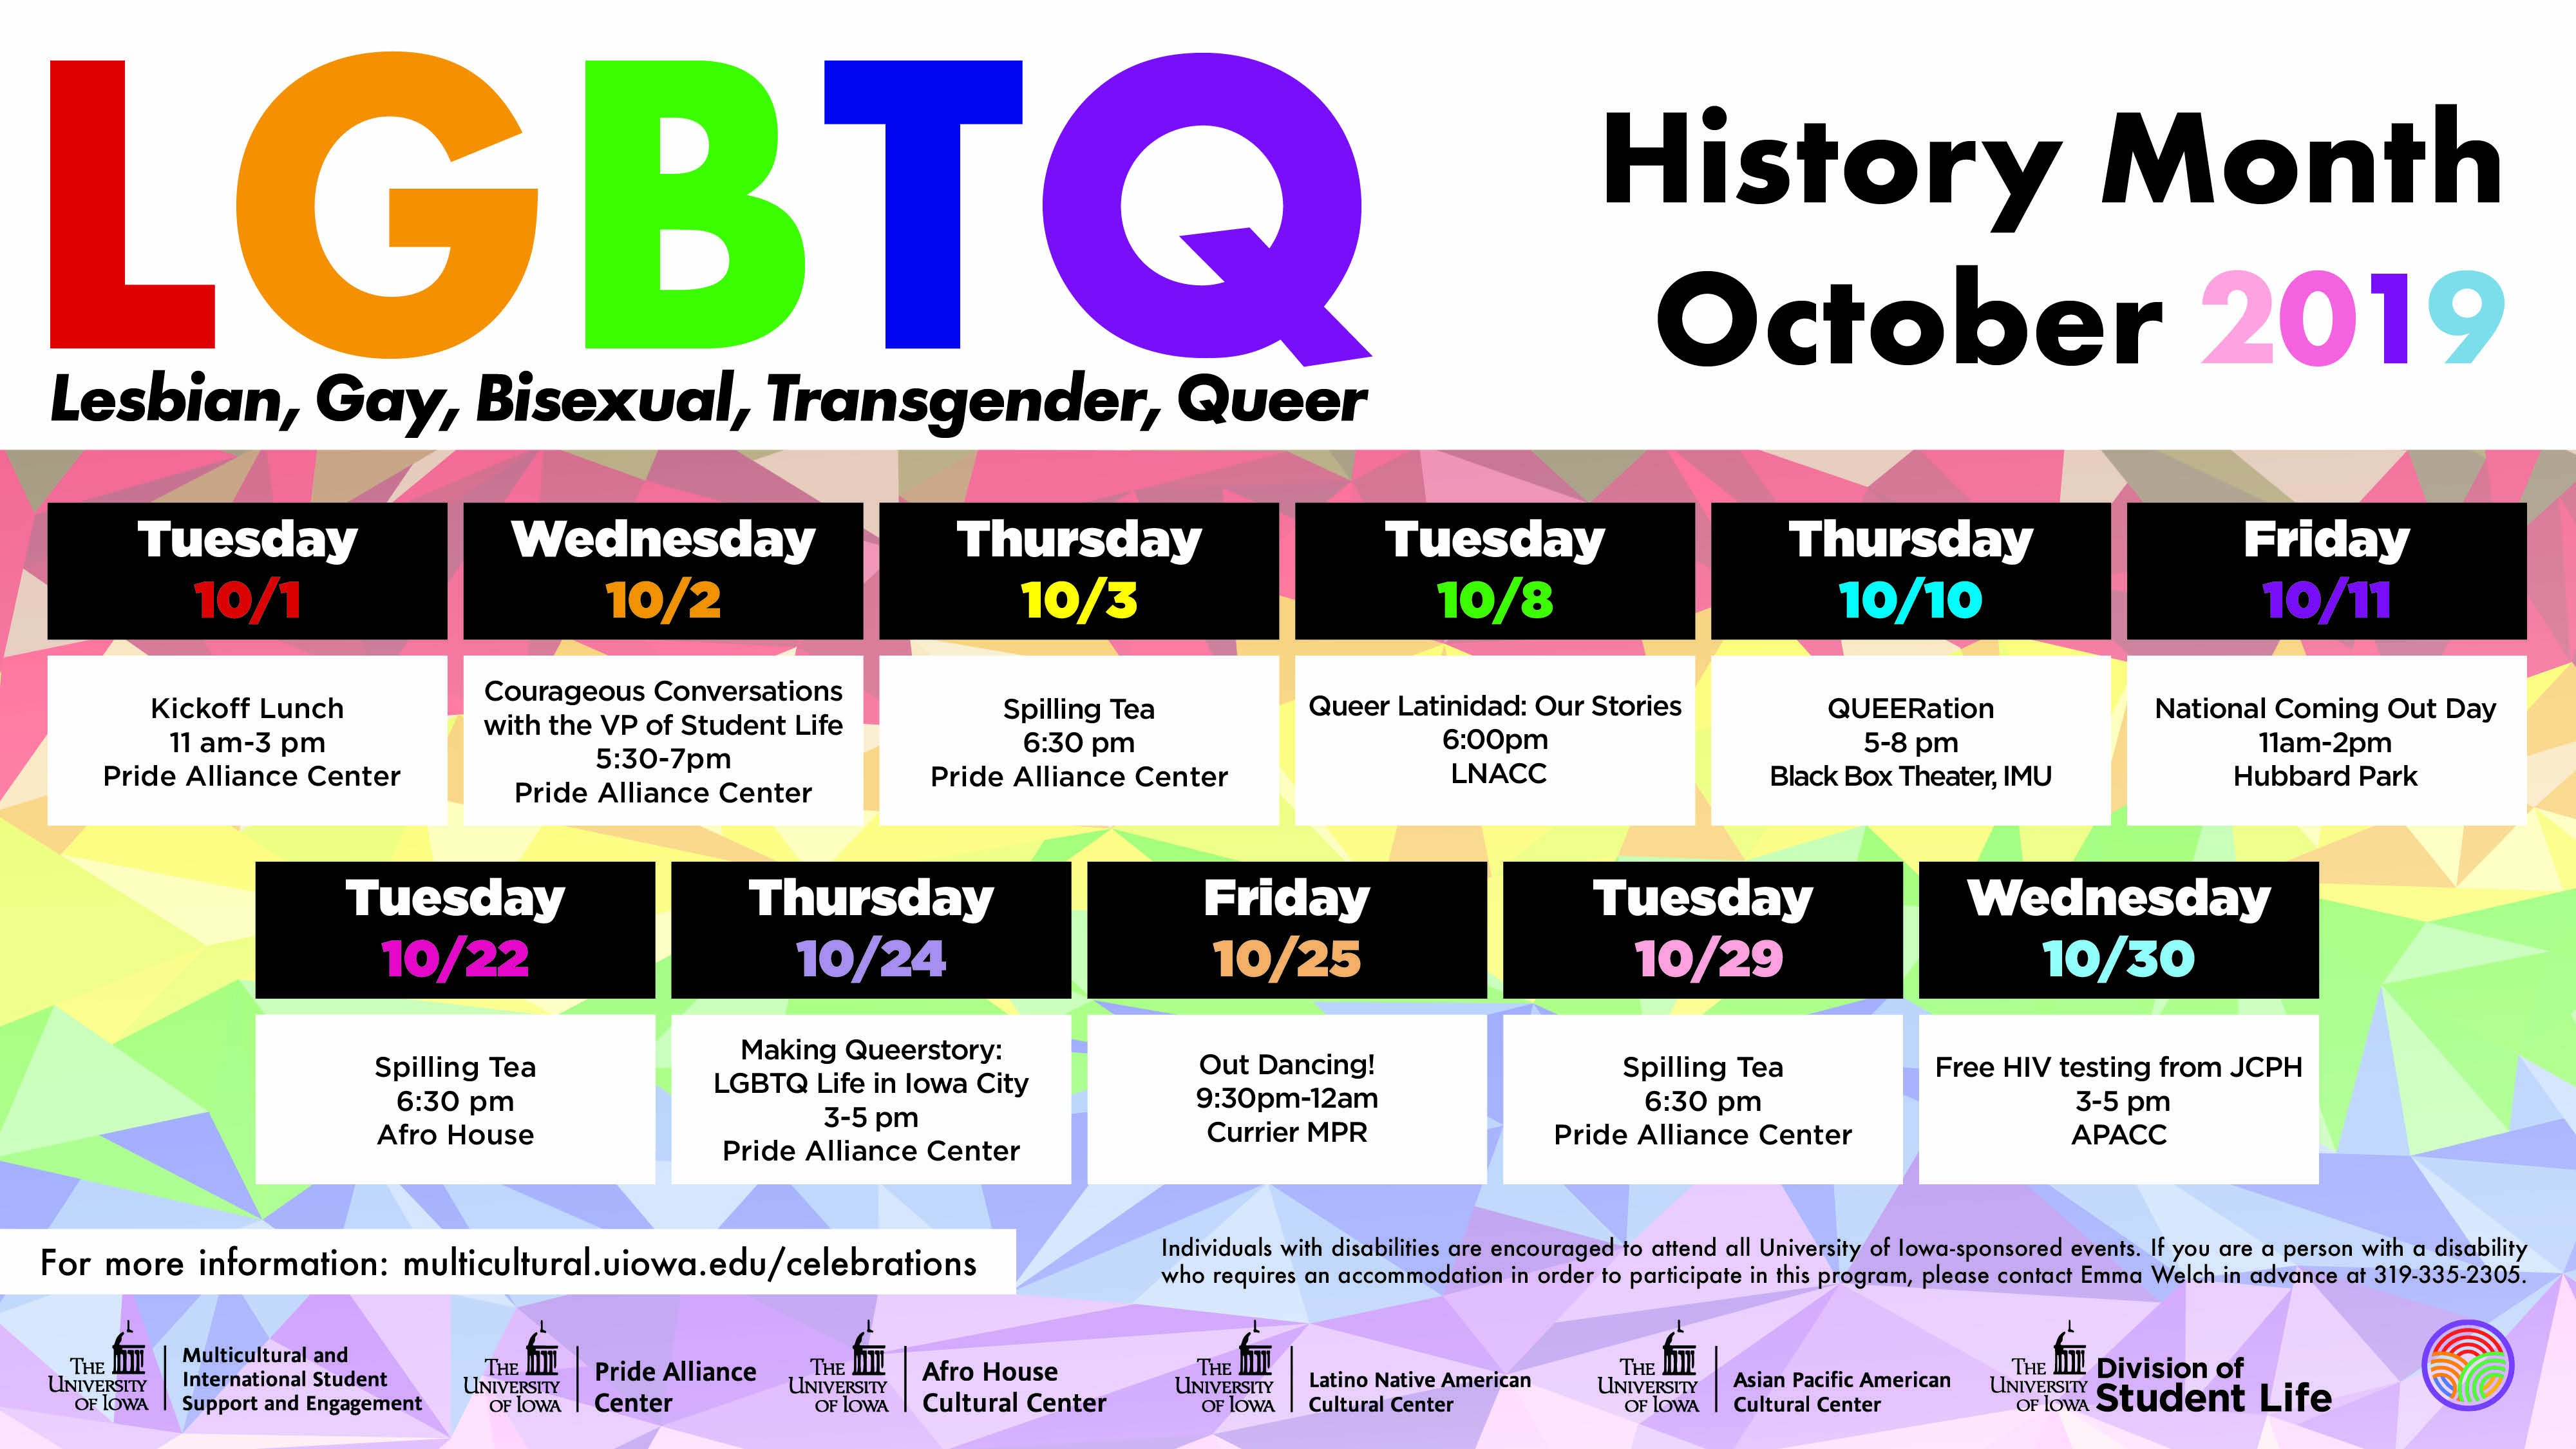 Making Queerstory: Lgbtq Life In Iowa City